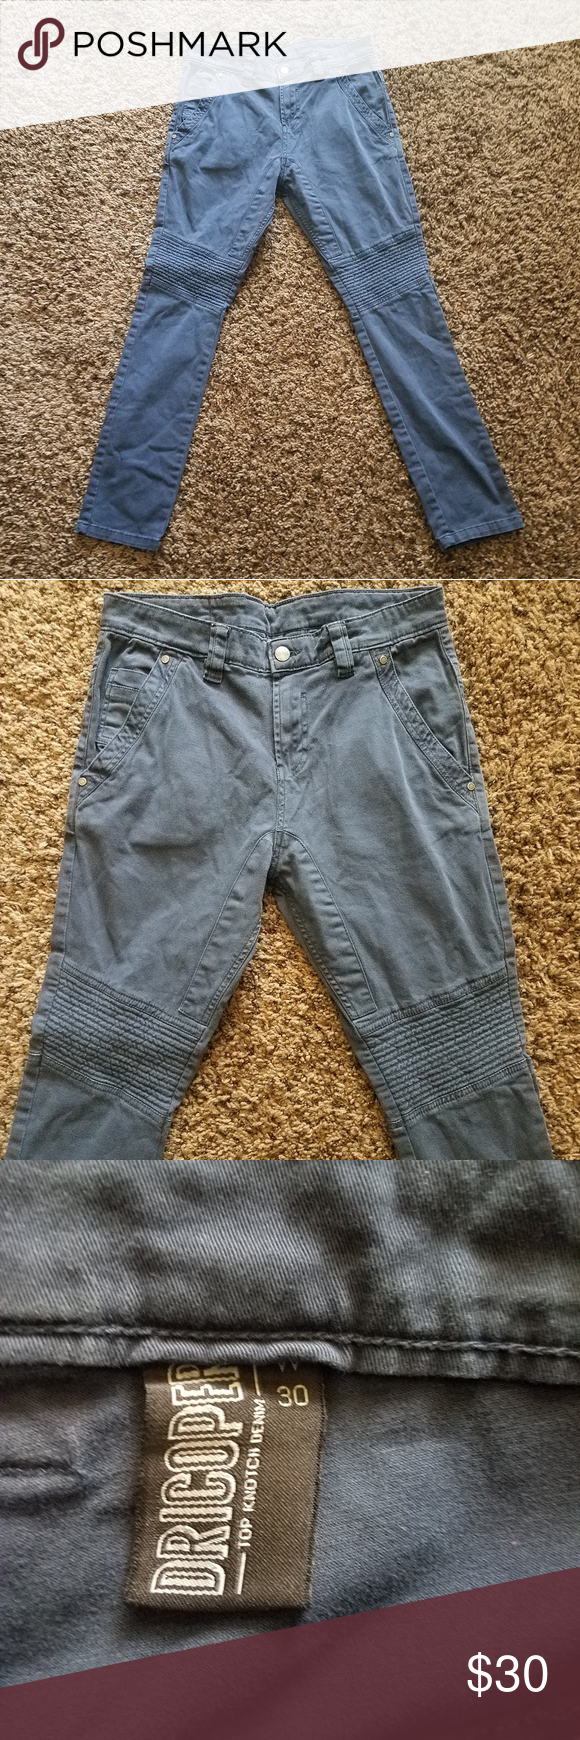 Men's Clothing Clothing, Shoes, Accessories Expressive Cos Navy Slim Fit Chinos Size 30